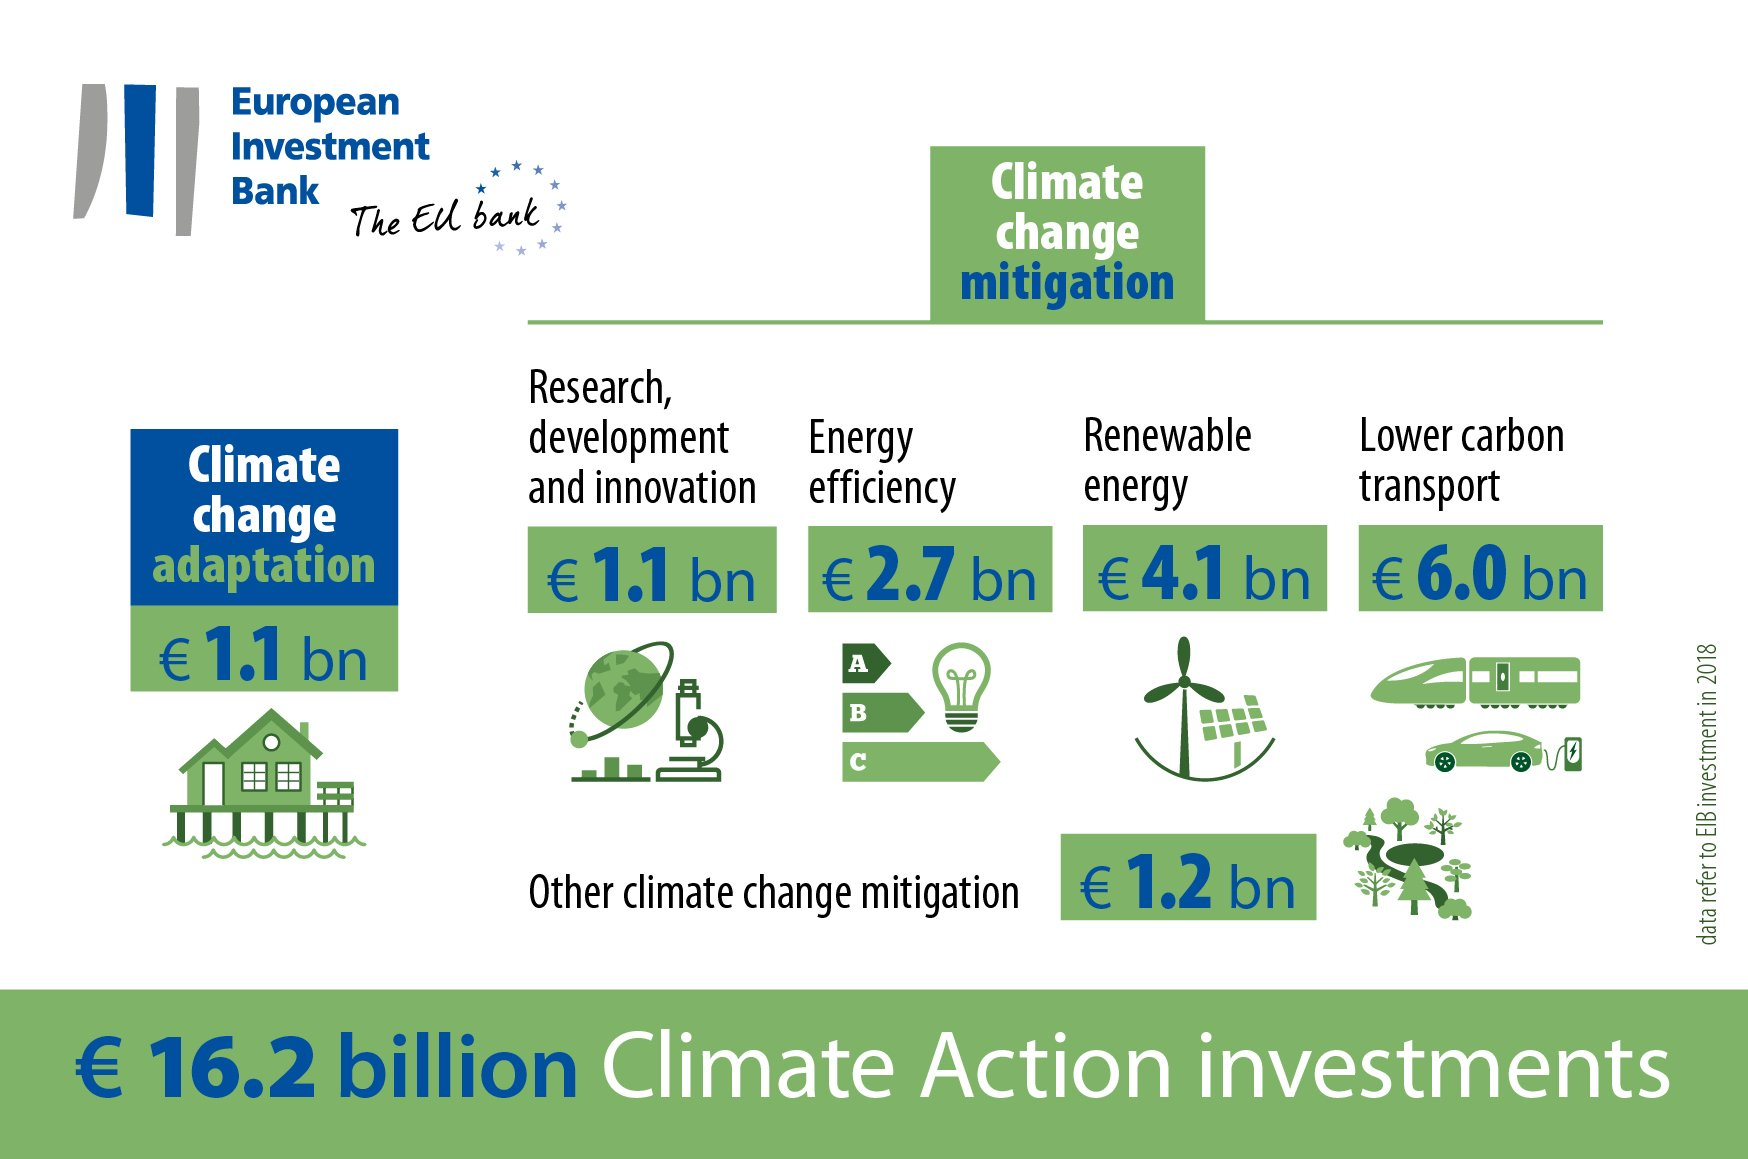 The European Development Bank's 2018 investments into climate change mitigation infographic